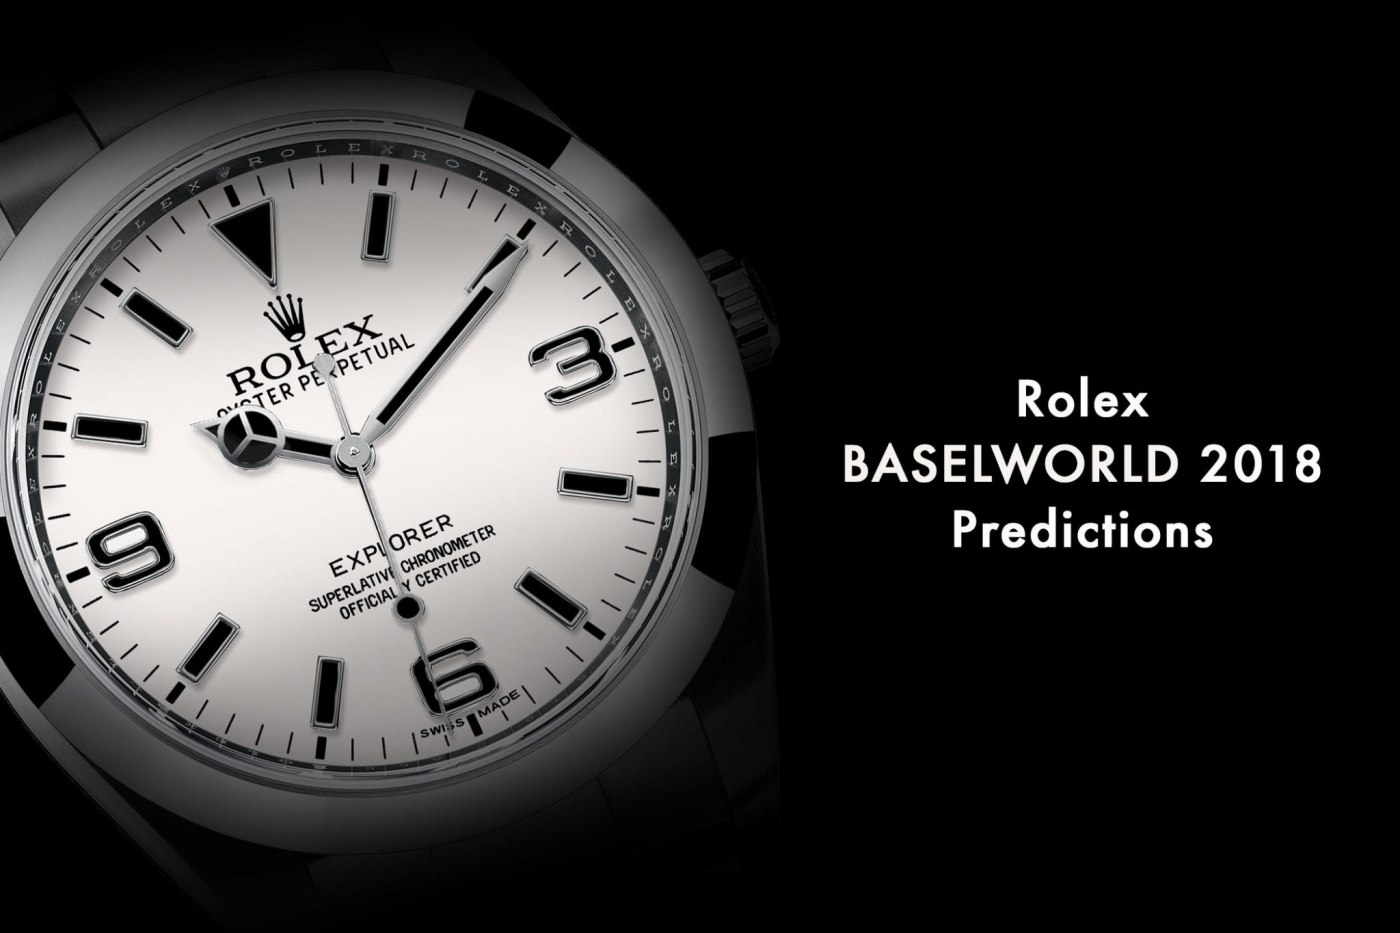 rolex Rolex: The Novelties for Baselworld 2018 Rolex Baselworld 2018 Rolex Predictions 2018 Rolex Novelties 2018 cover 1400x933